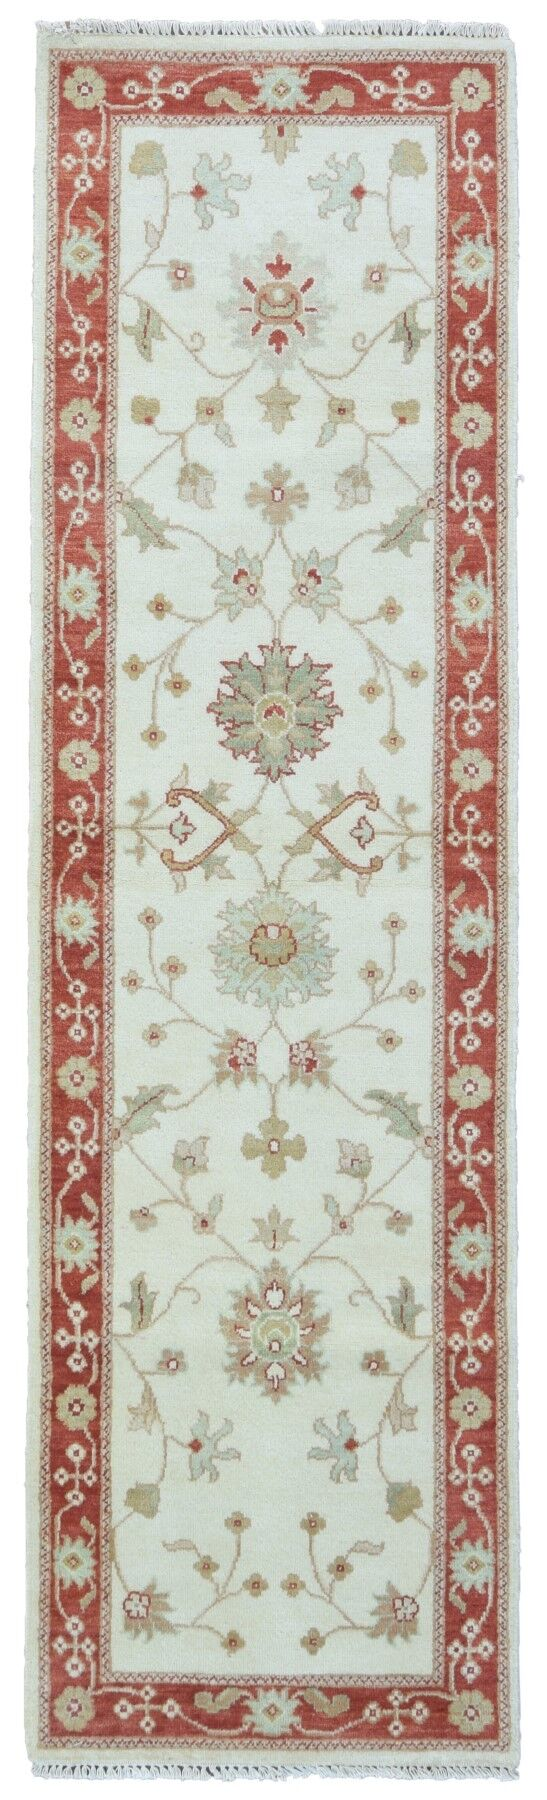 One-of-a-Kind Baron Hand-Knotted Wool Beige/Red Area Rug